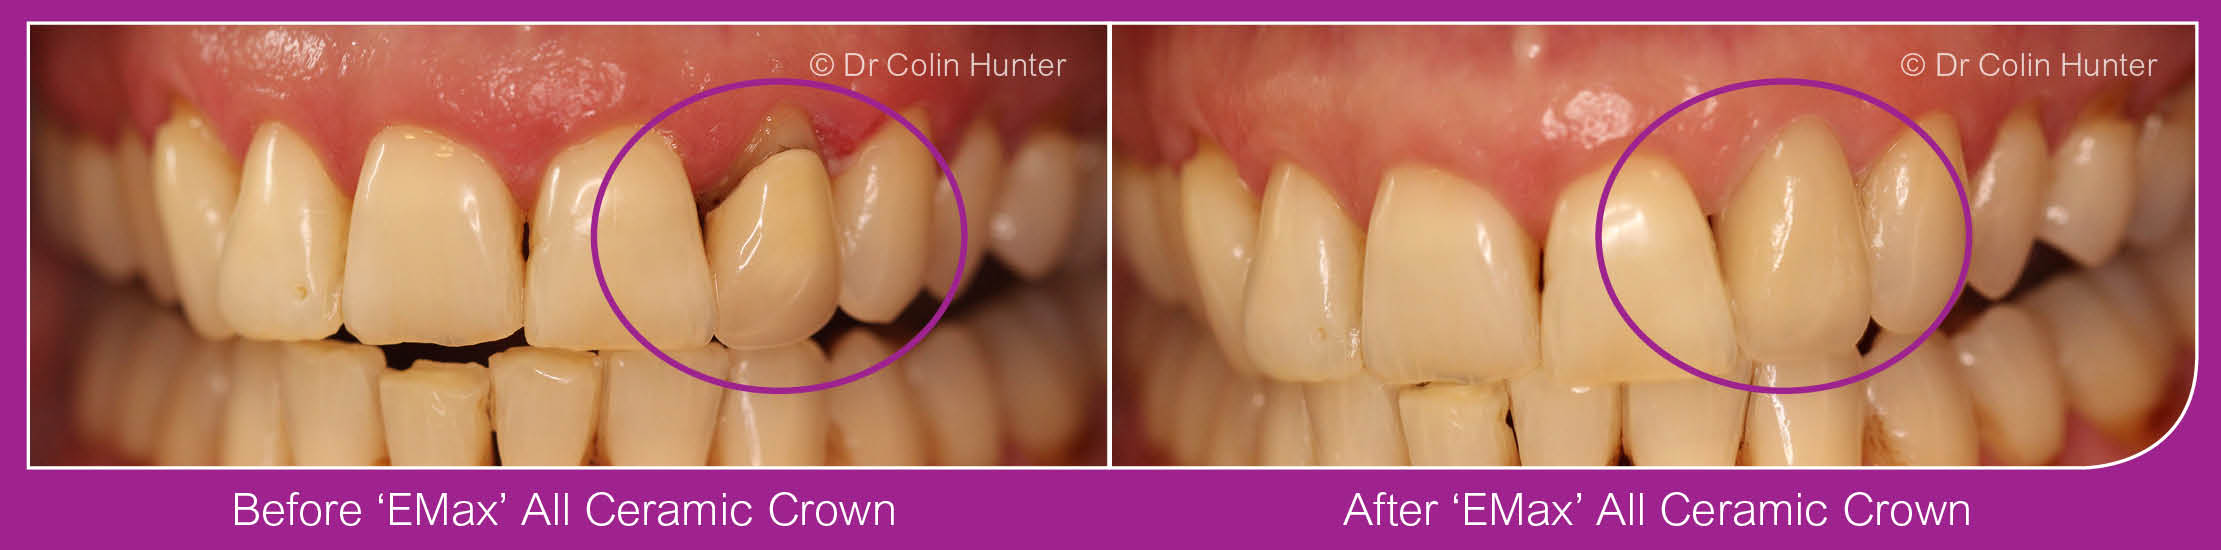 All Ceramic Crowns Dalry, Kilbirnie, Beith